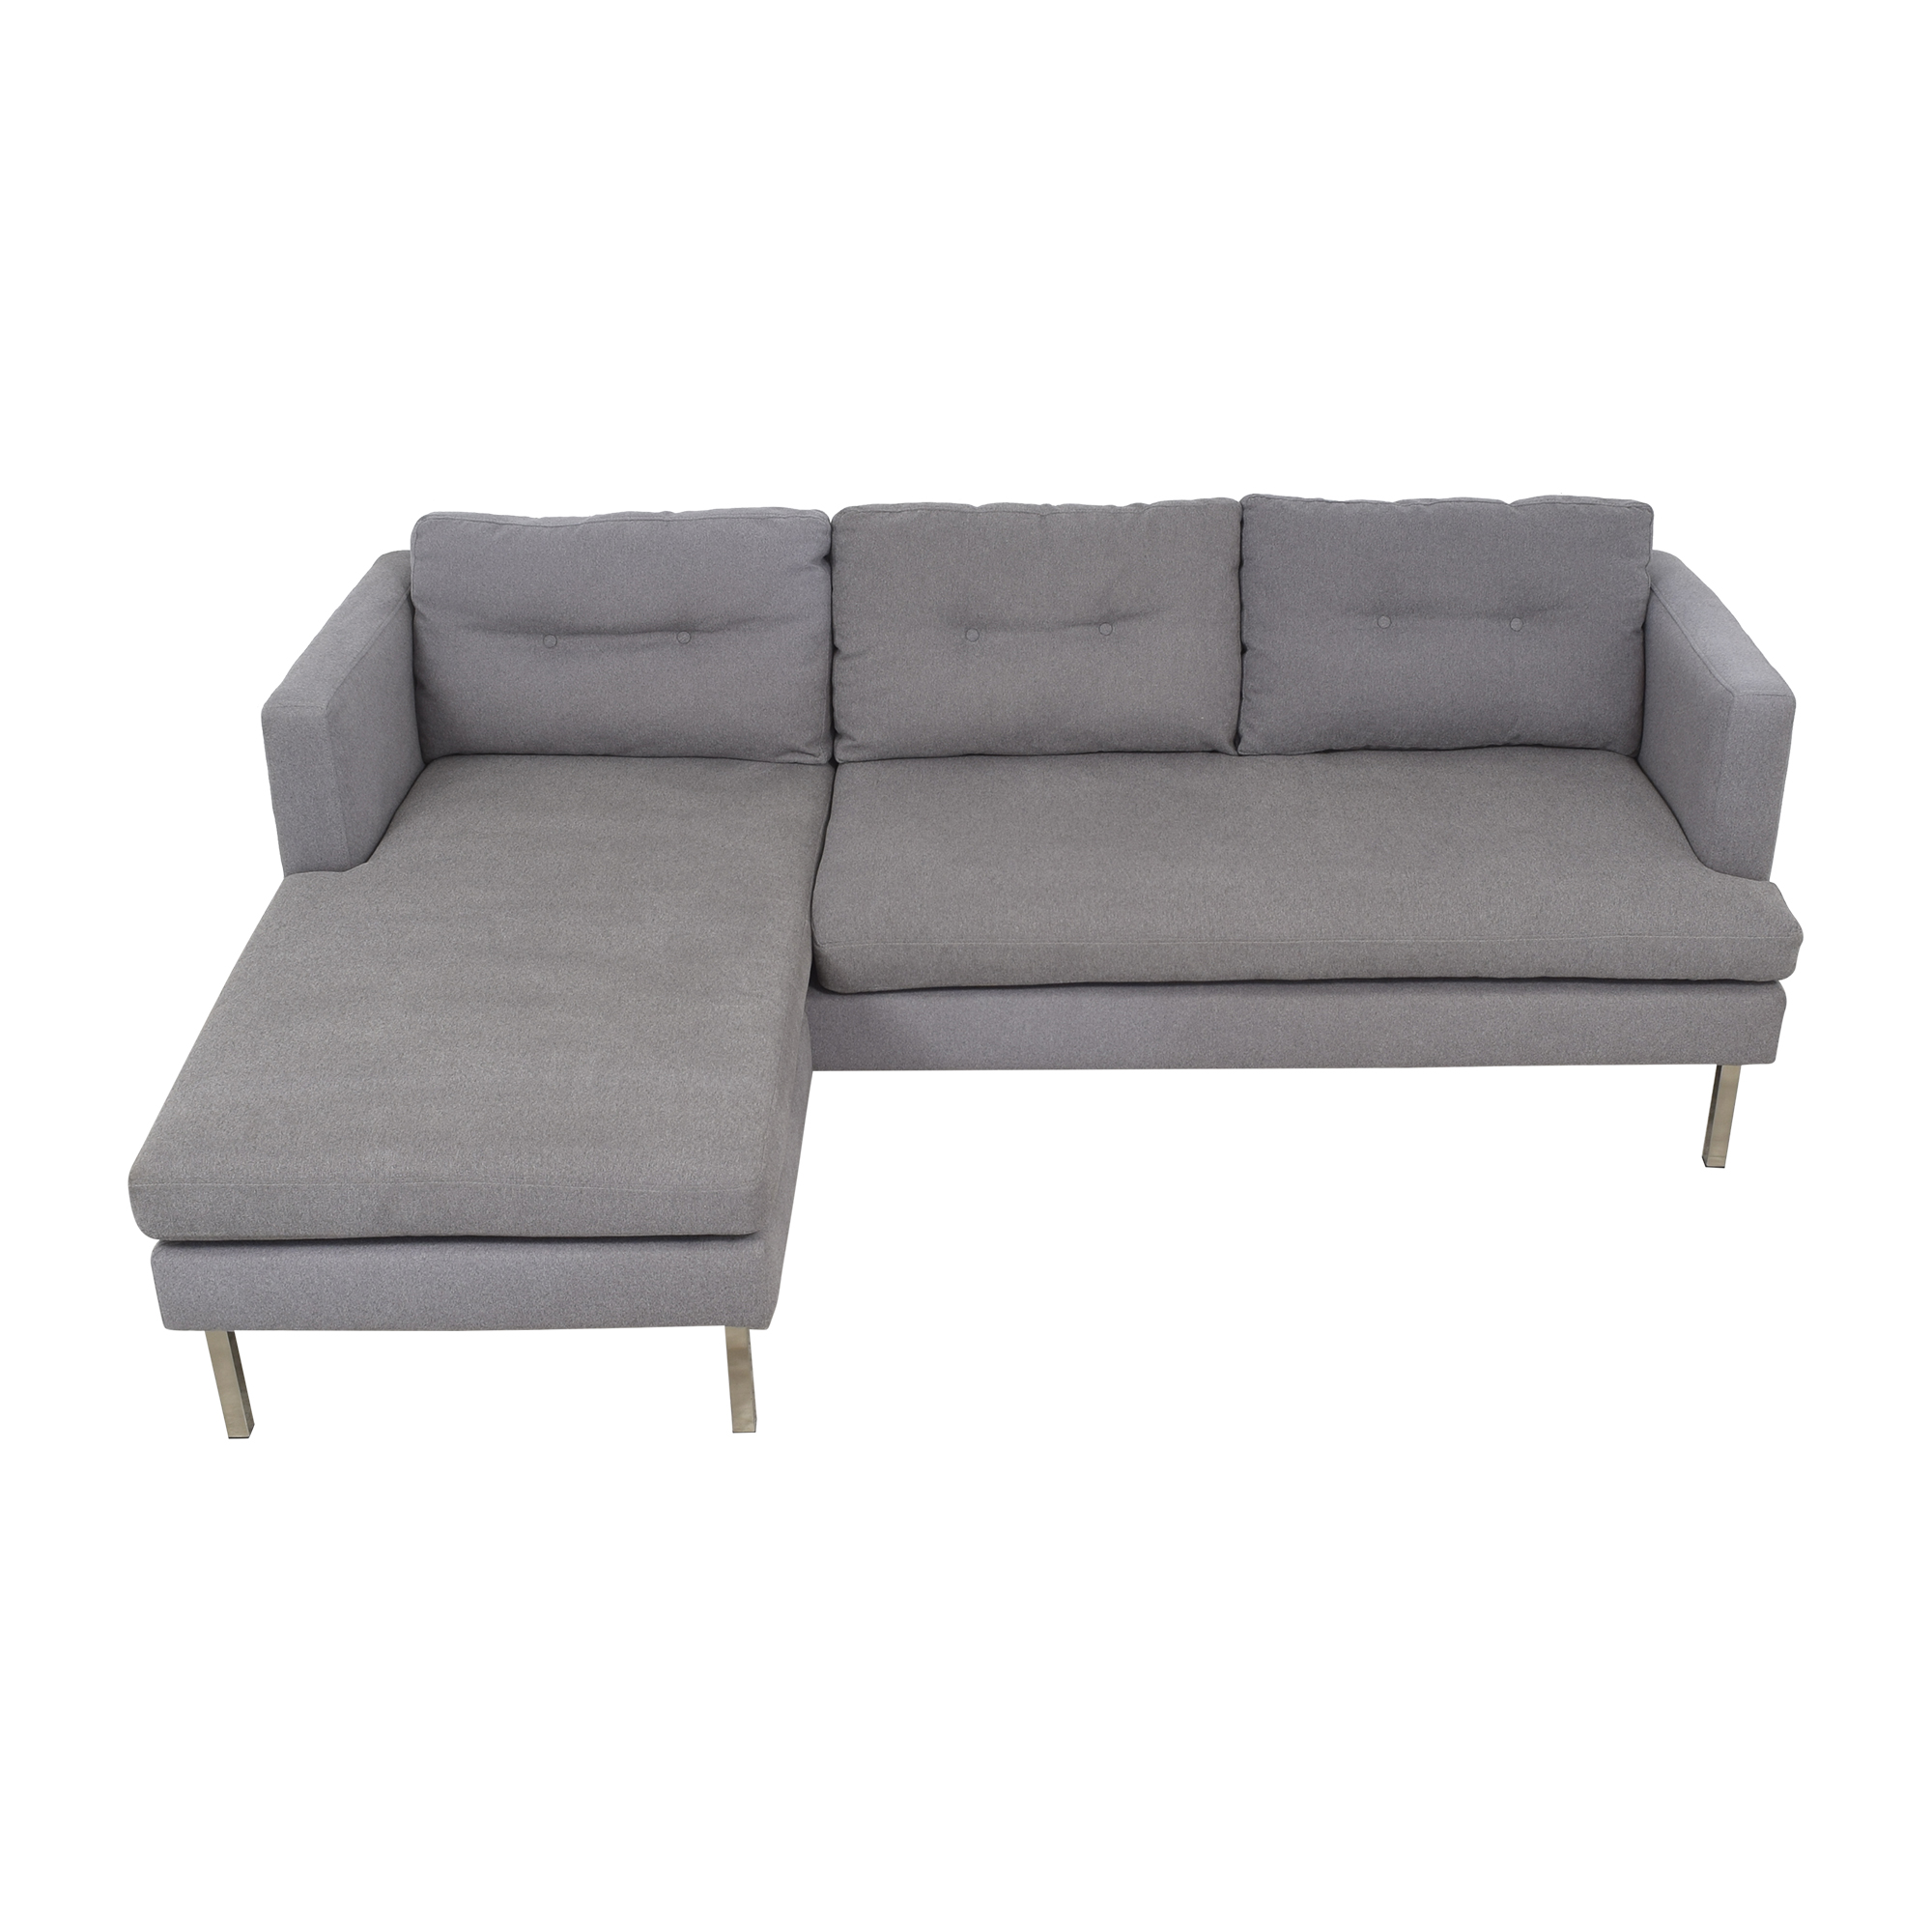 West Elm West Elm Modern Sectional Sofa with Chaise dimensions